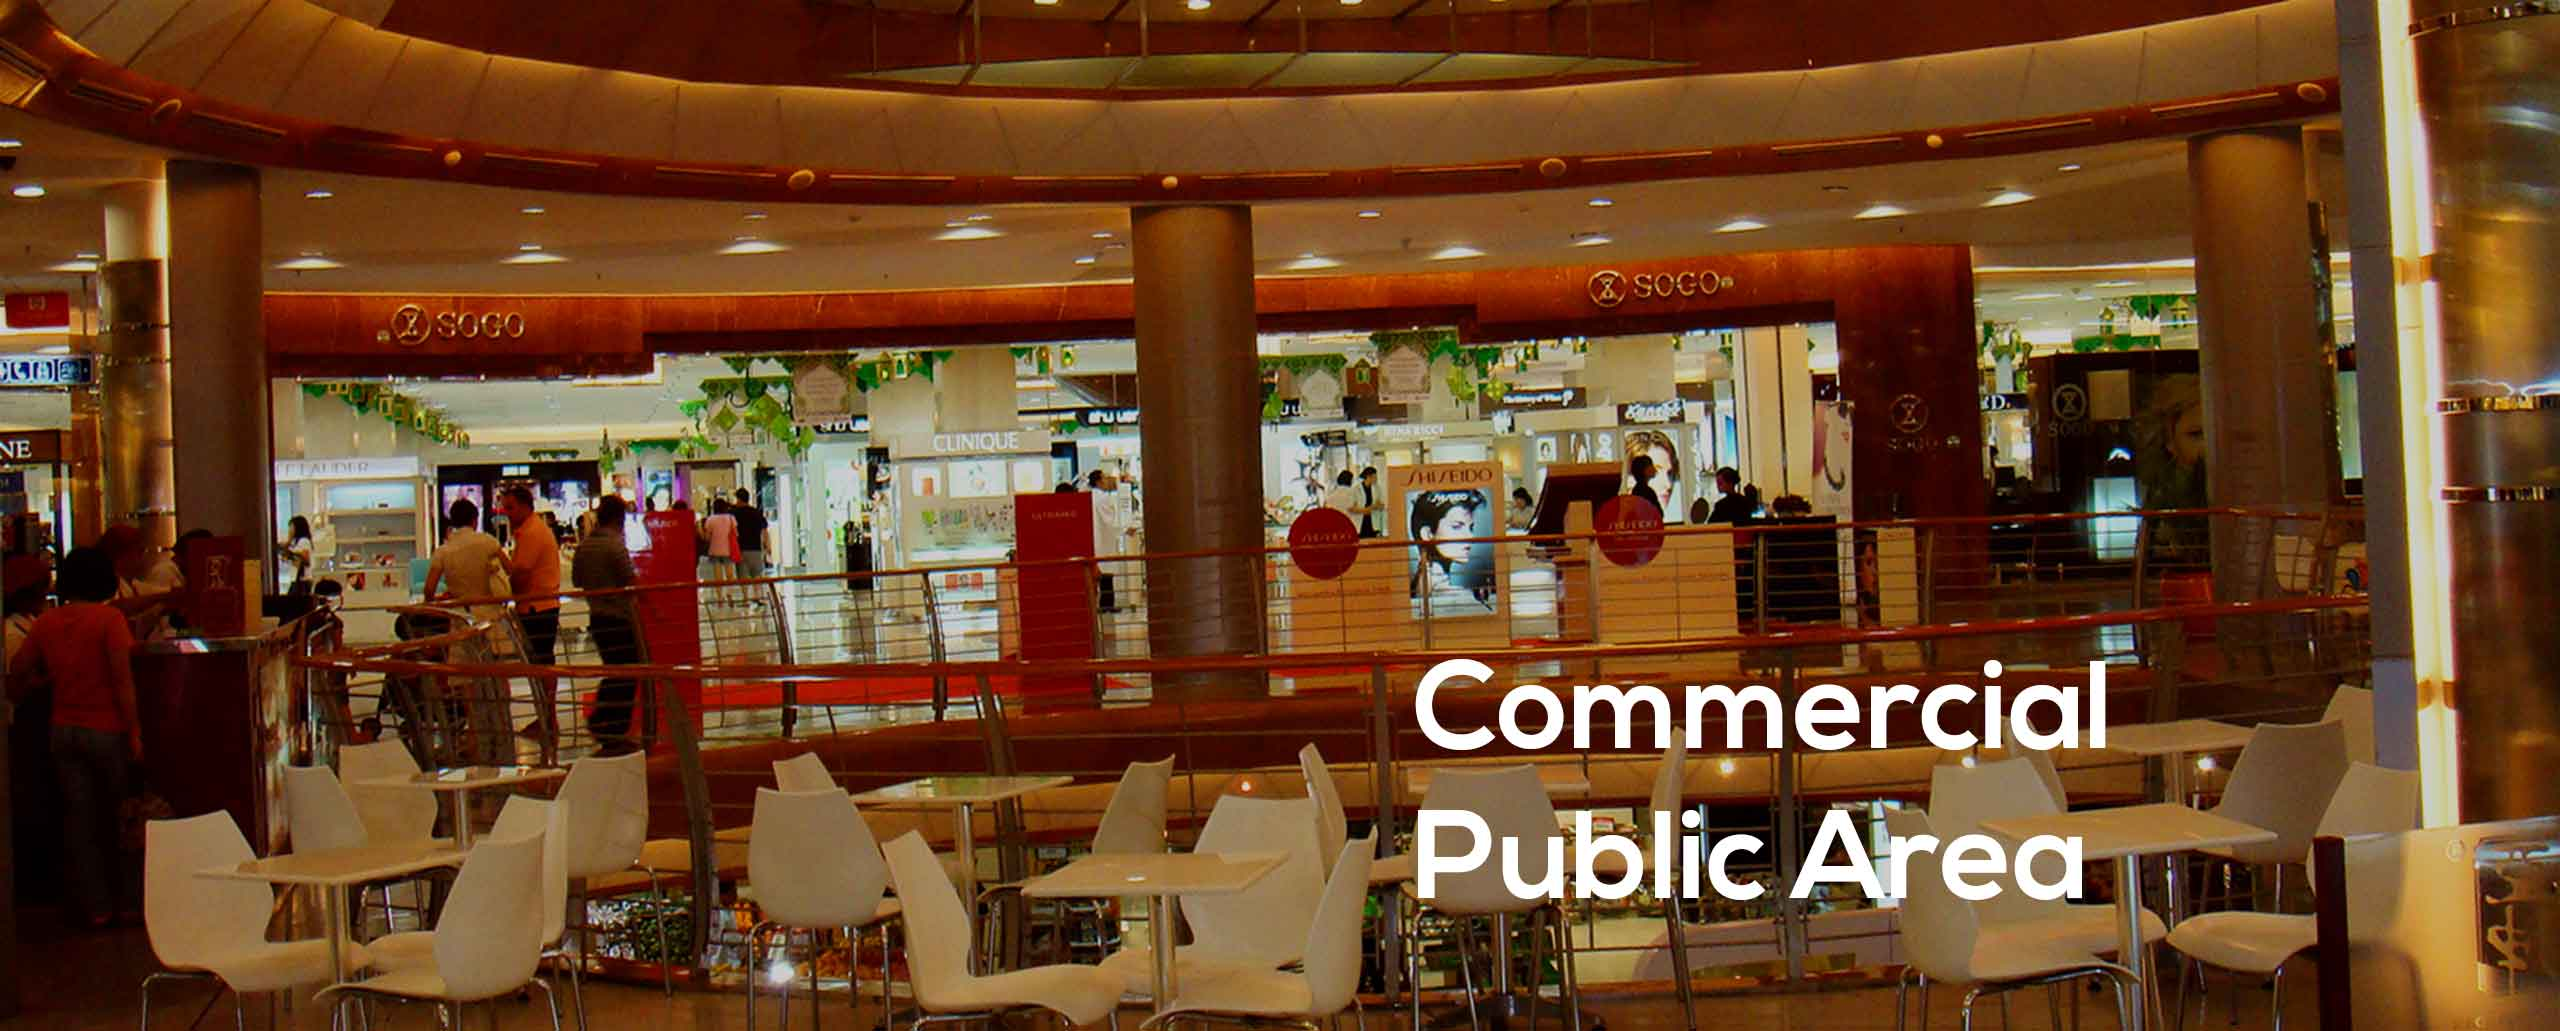 Commercial Public Area